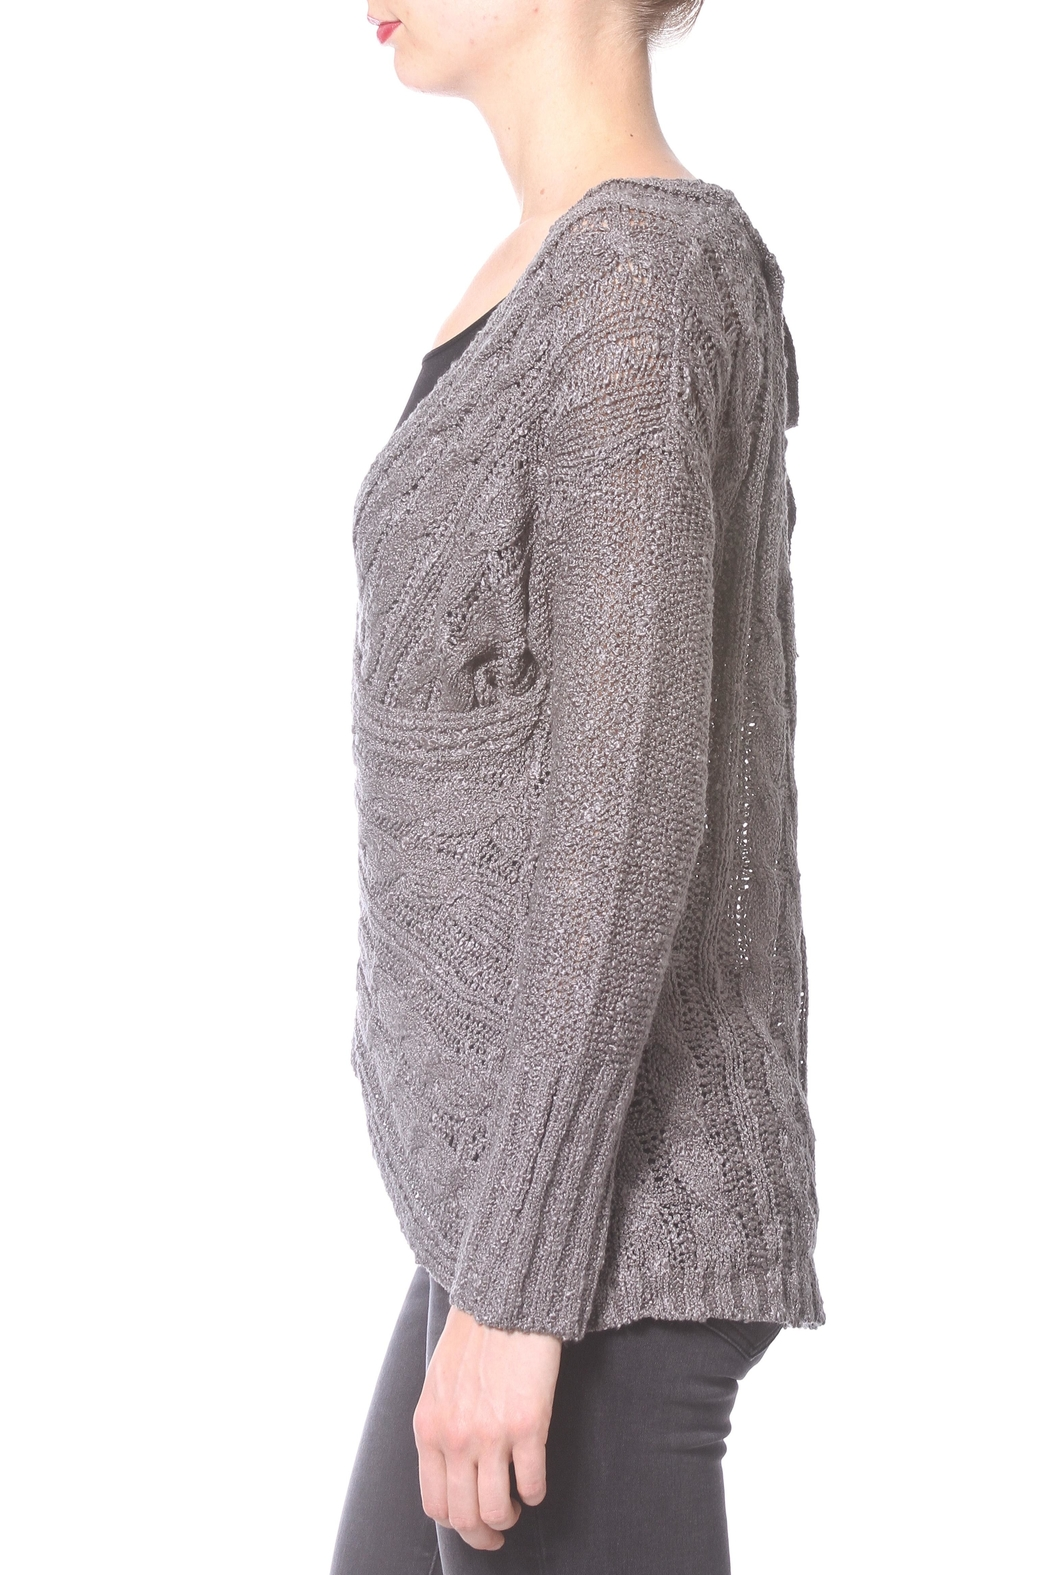 Madonna & Co Wrap Reversible Sweater - Front Full Image